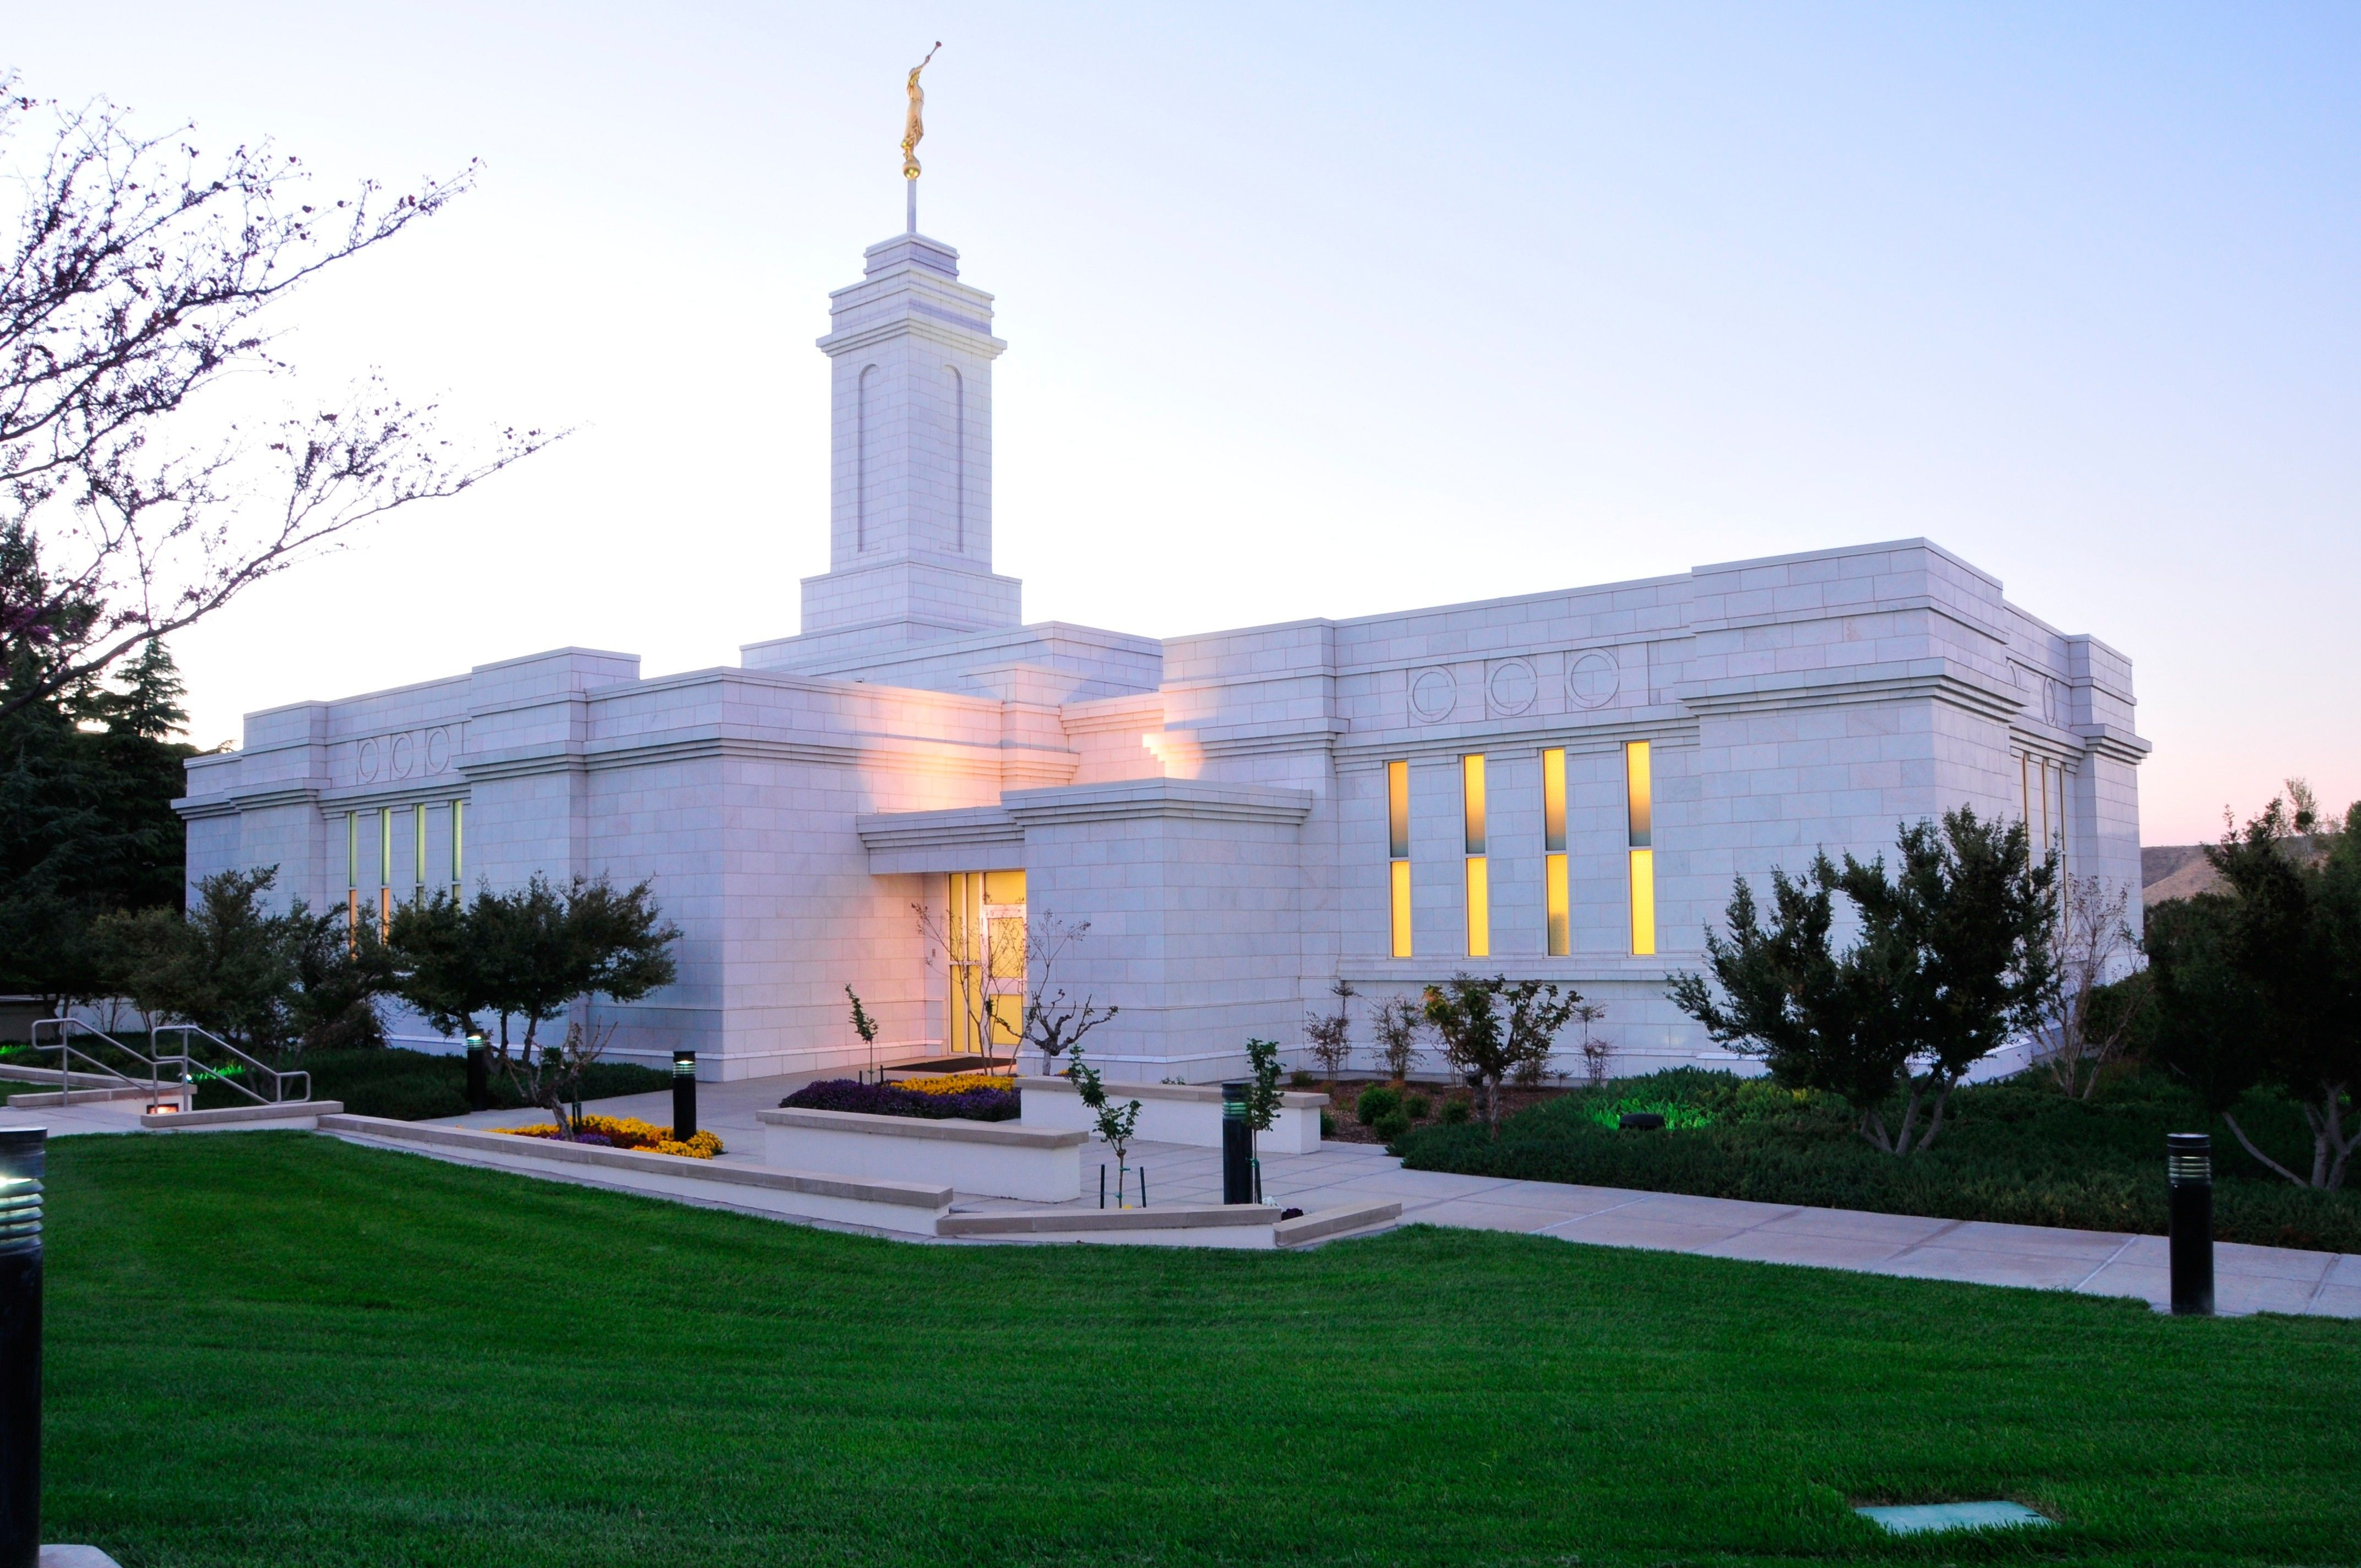 The Colonia Juárez Chihuahua Mexico Temple lit up in the evening.